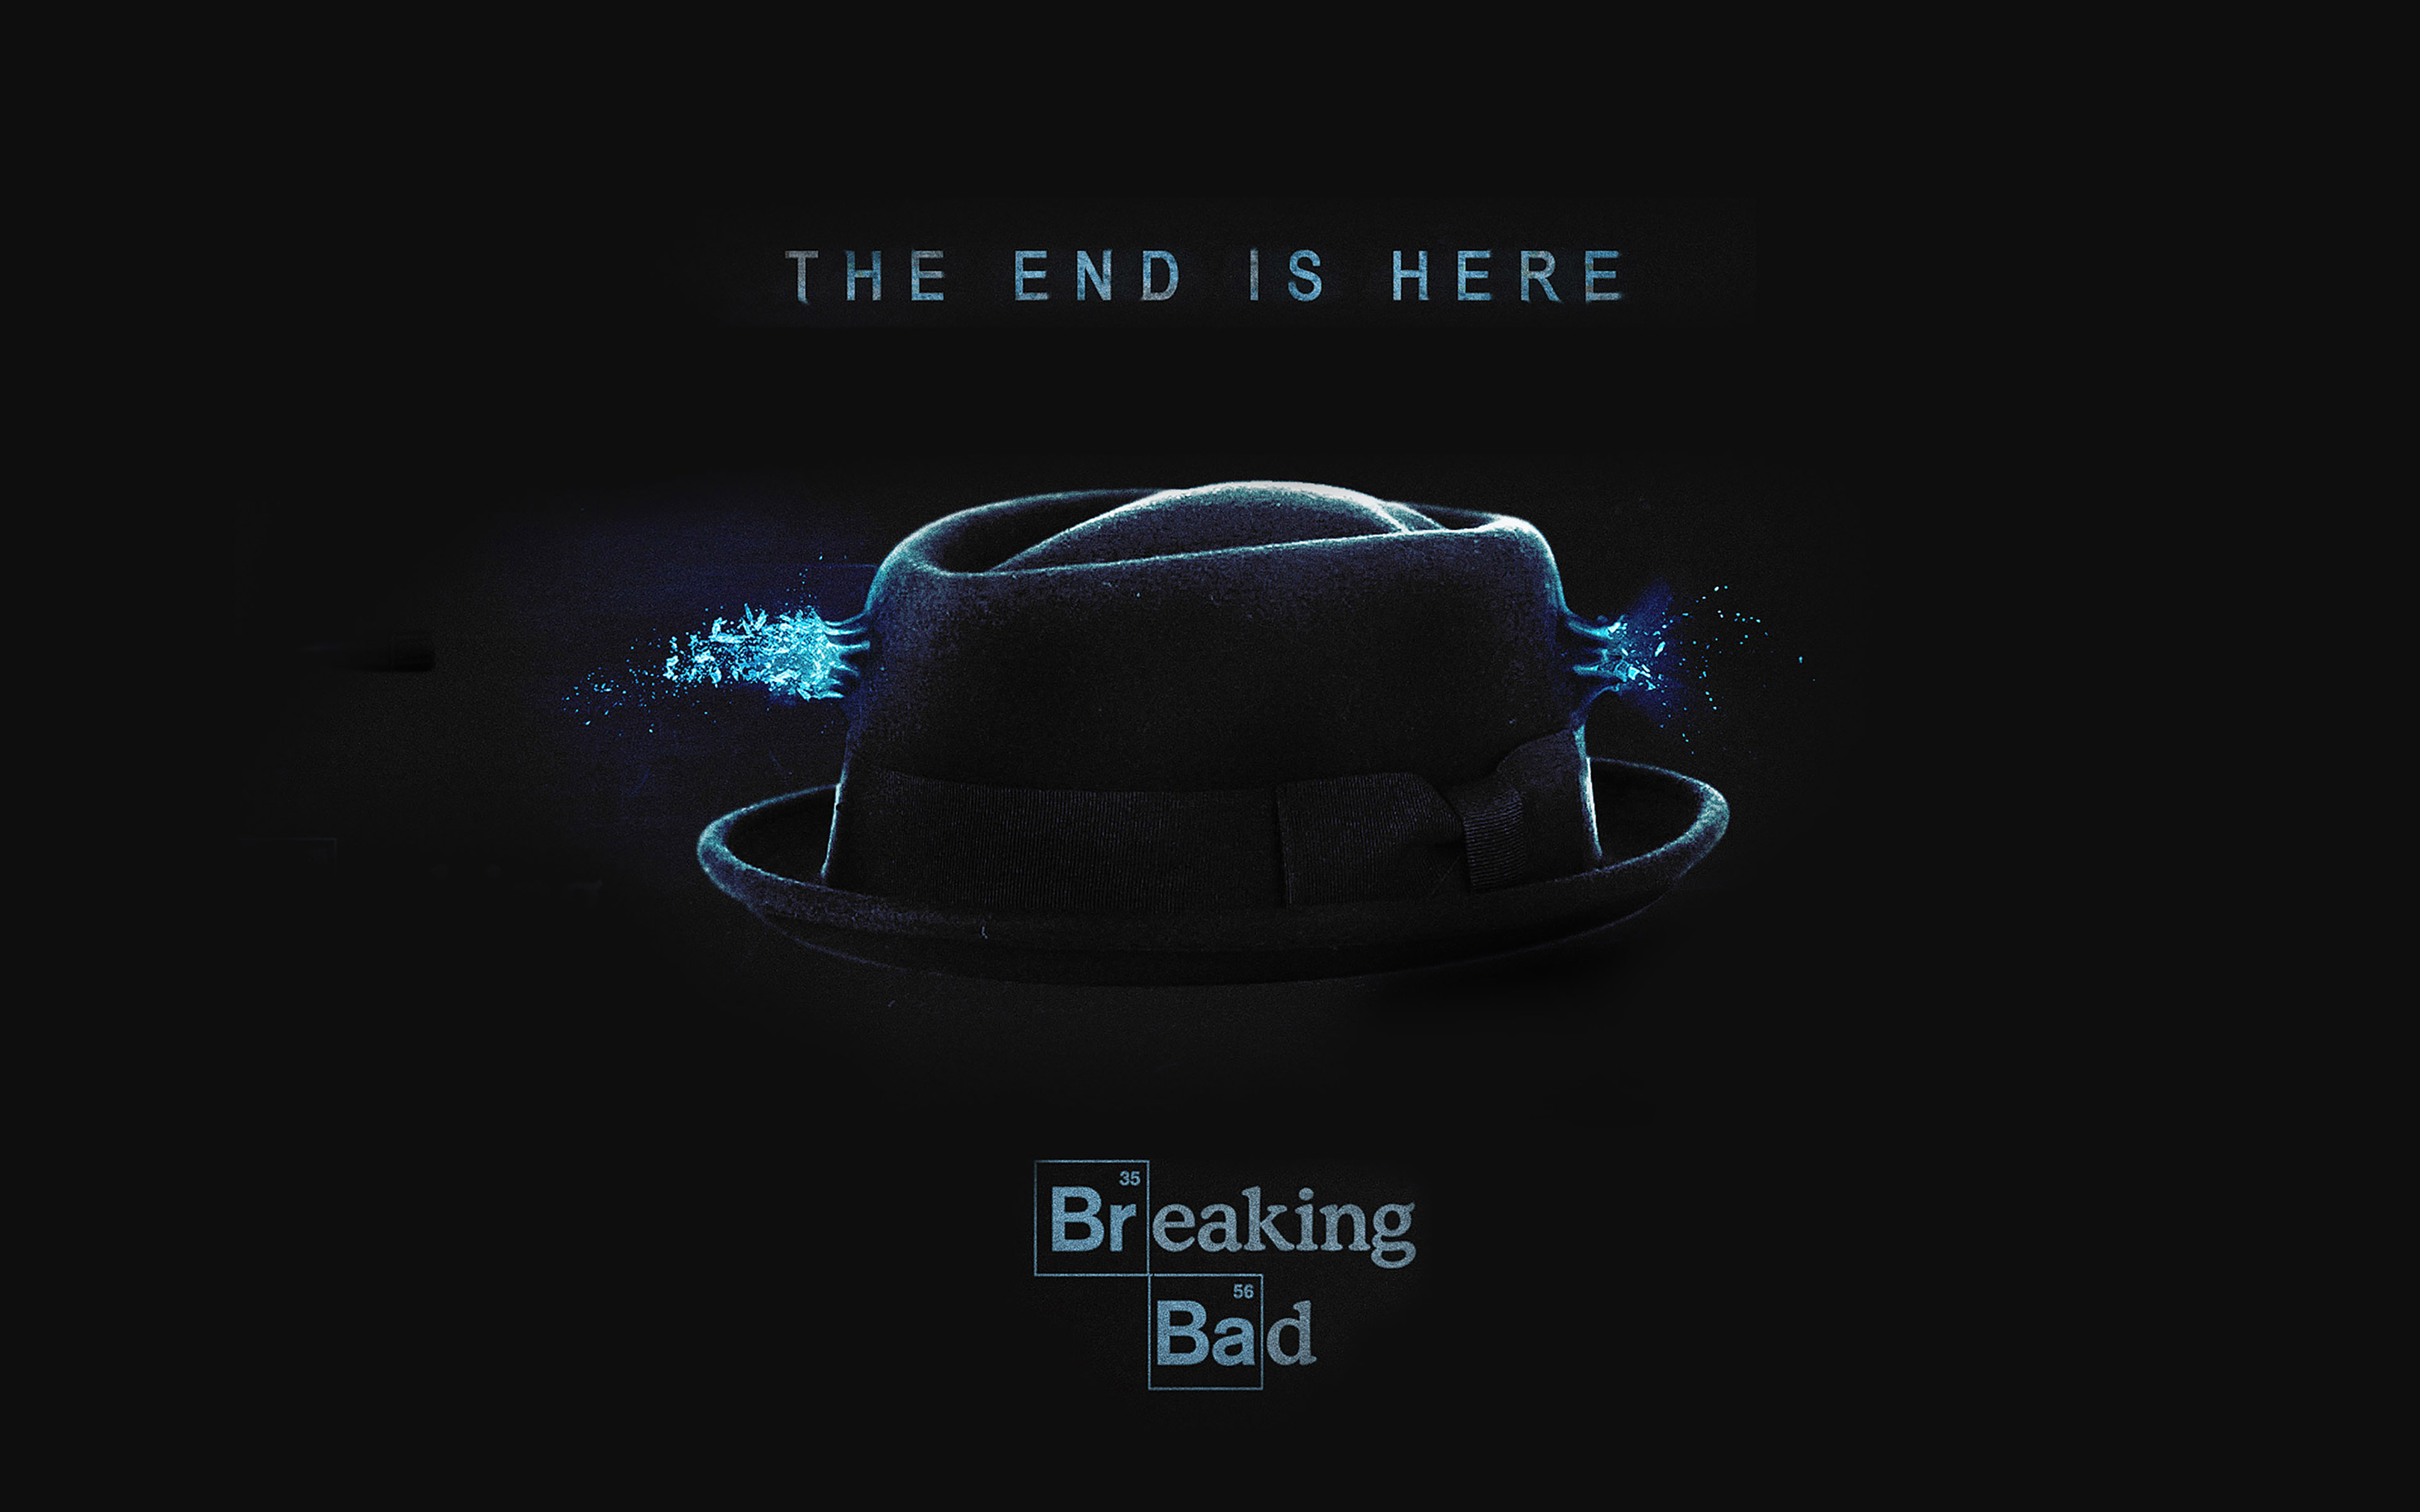 aa15-breaking-bad-end-film-art - papers.co